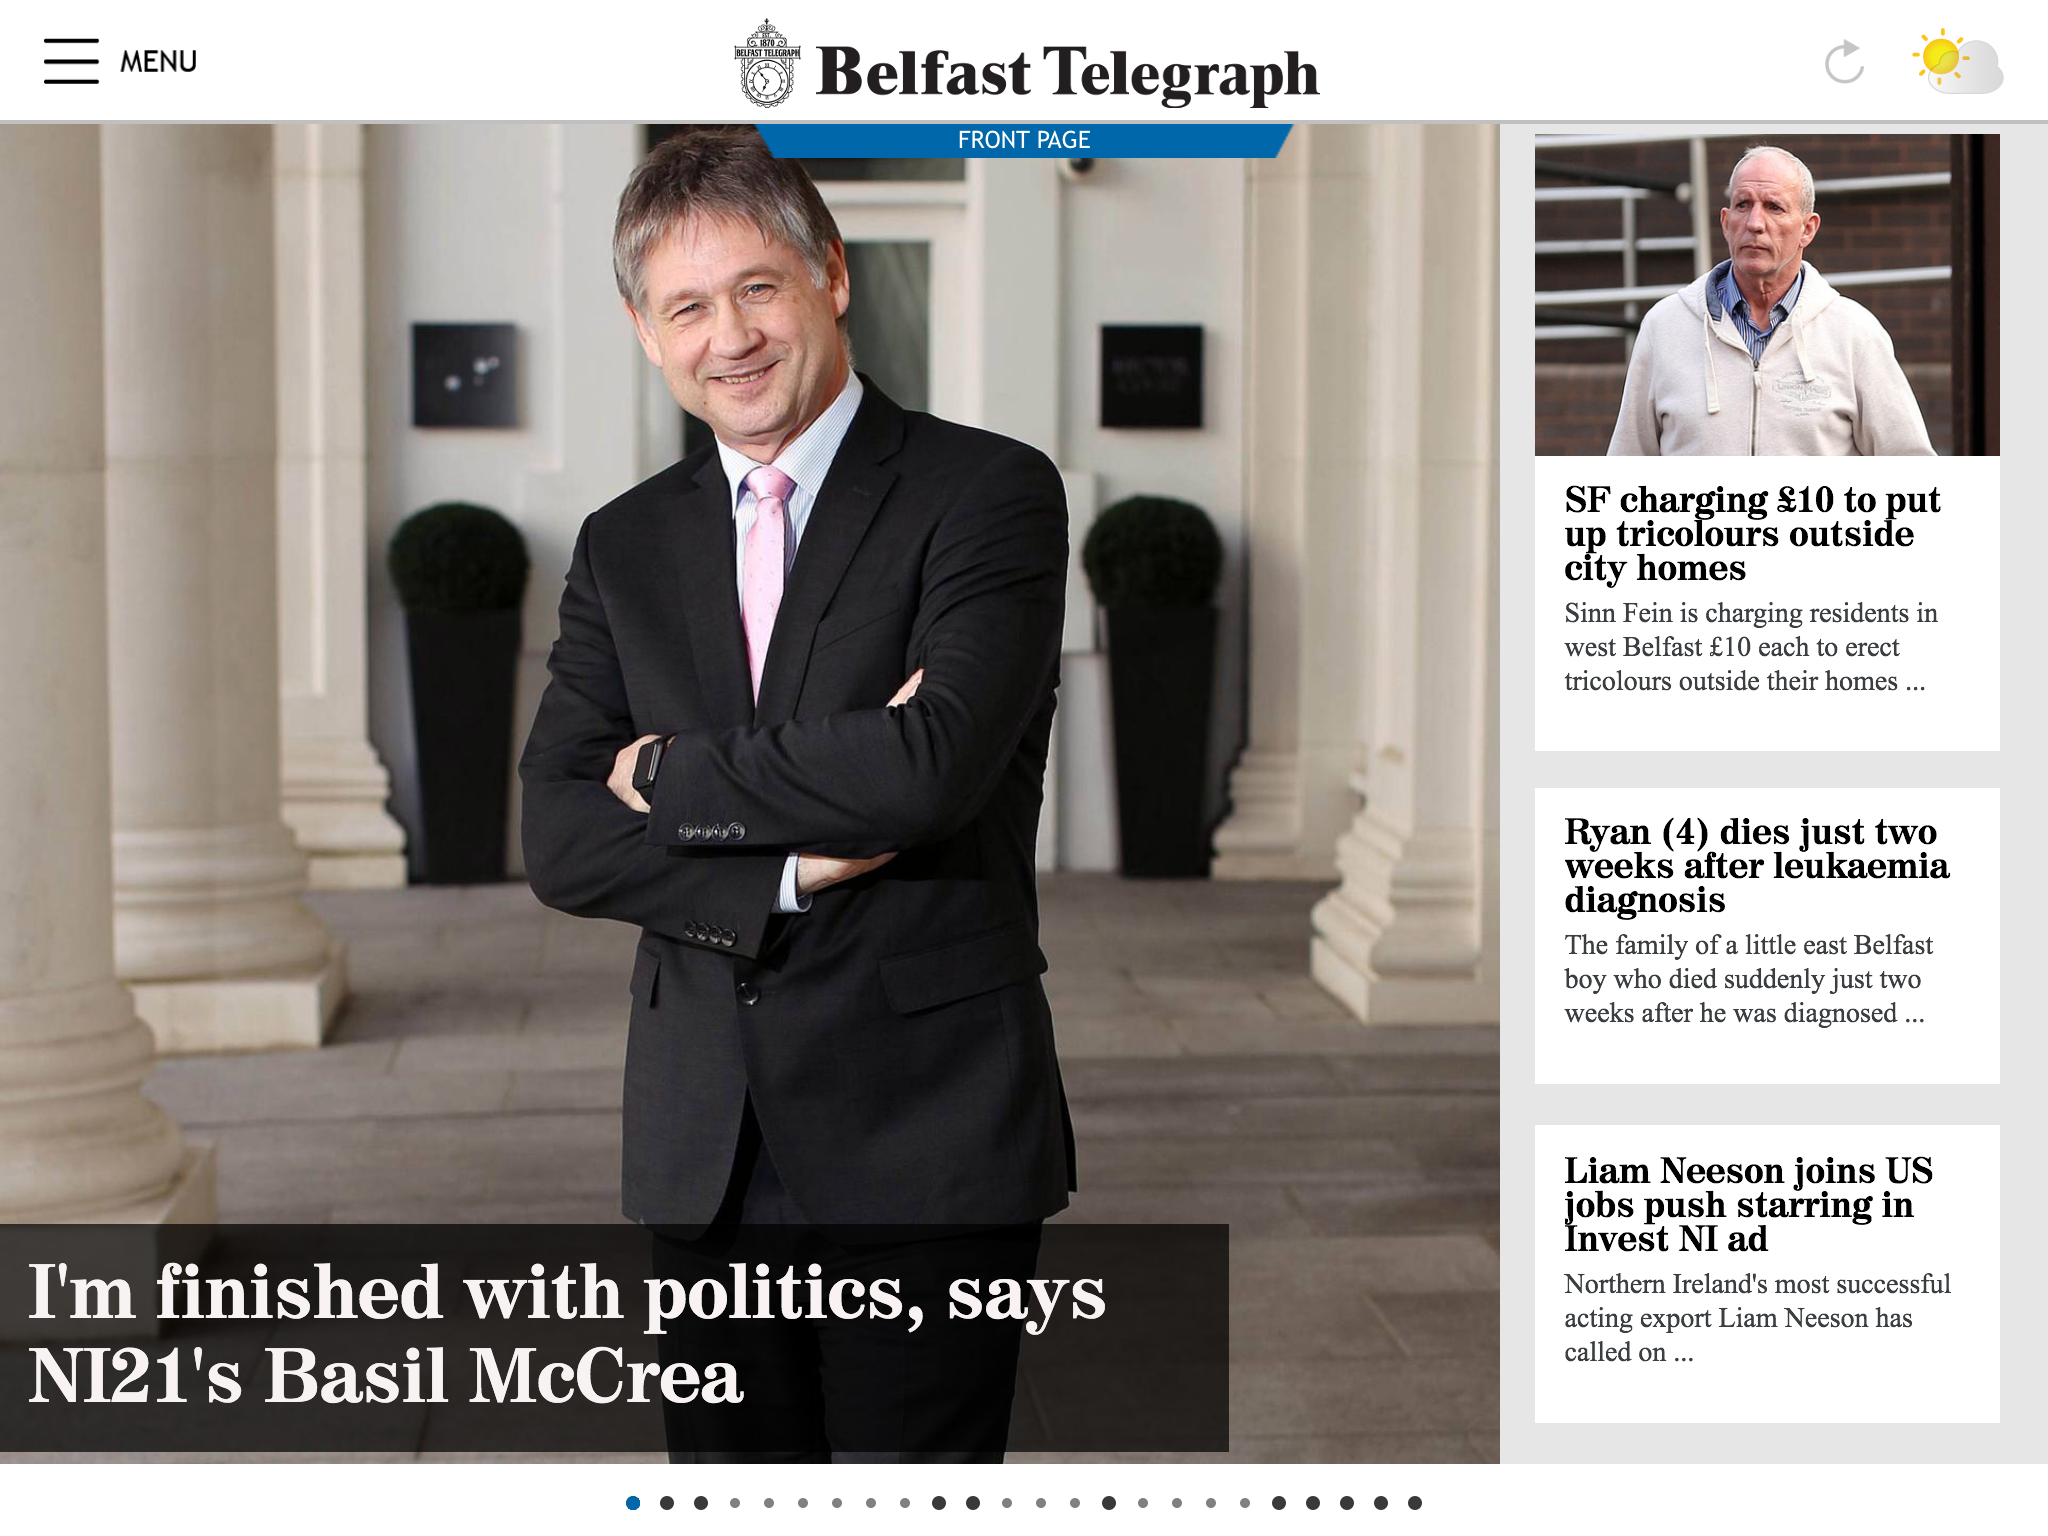 Example work for Belfast Telegraph shown on tablets